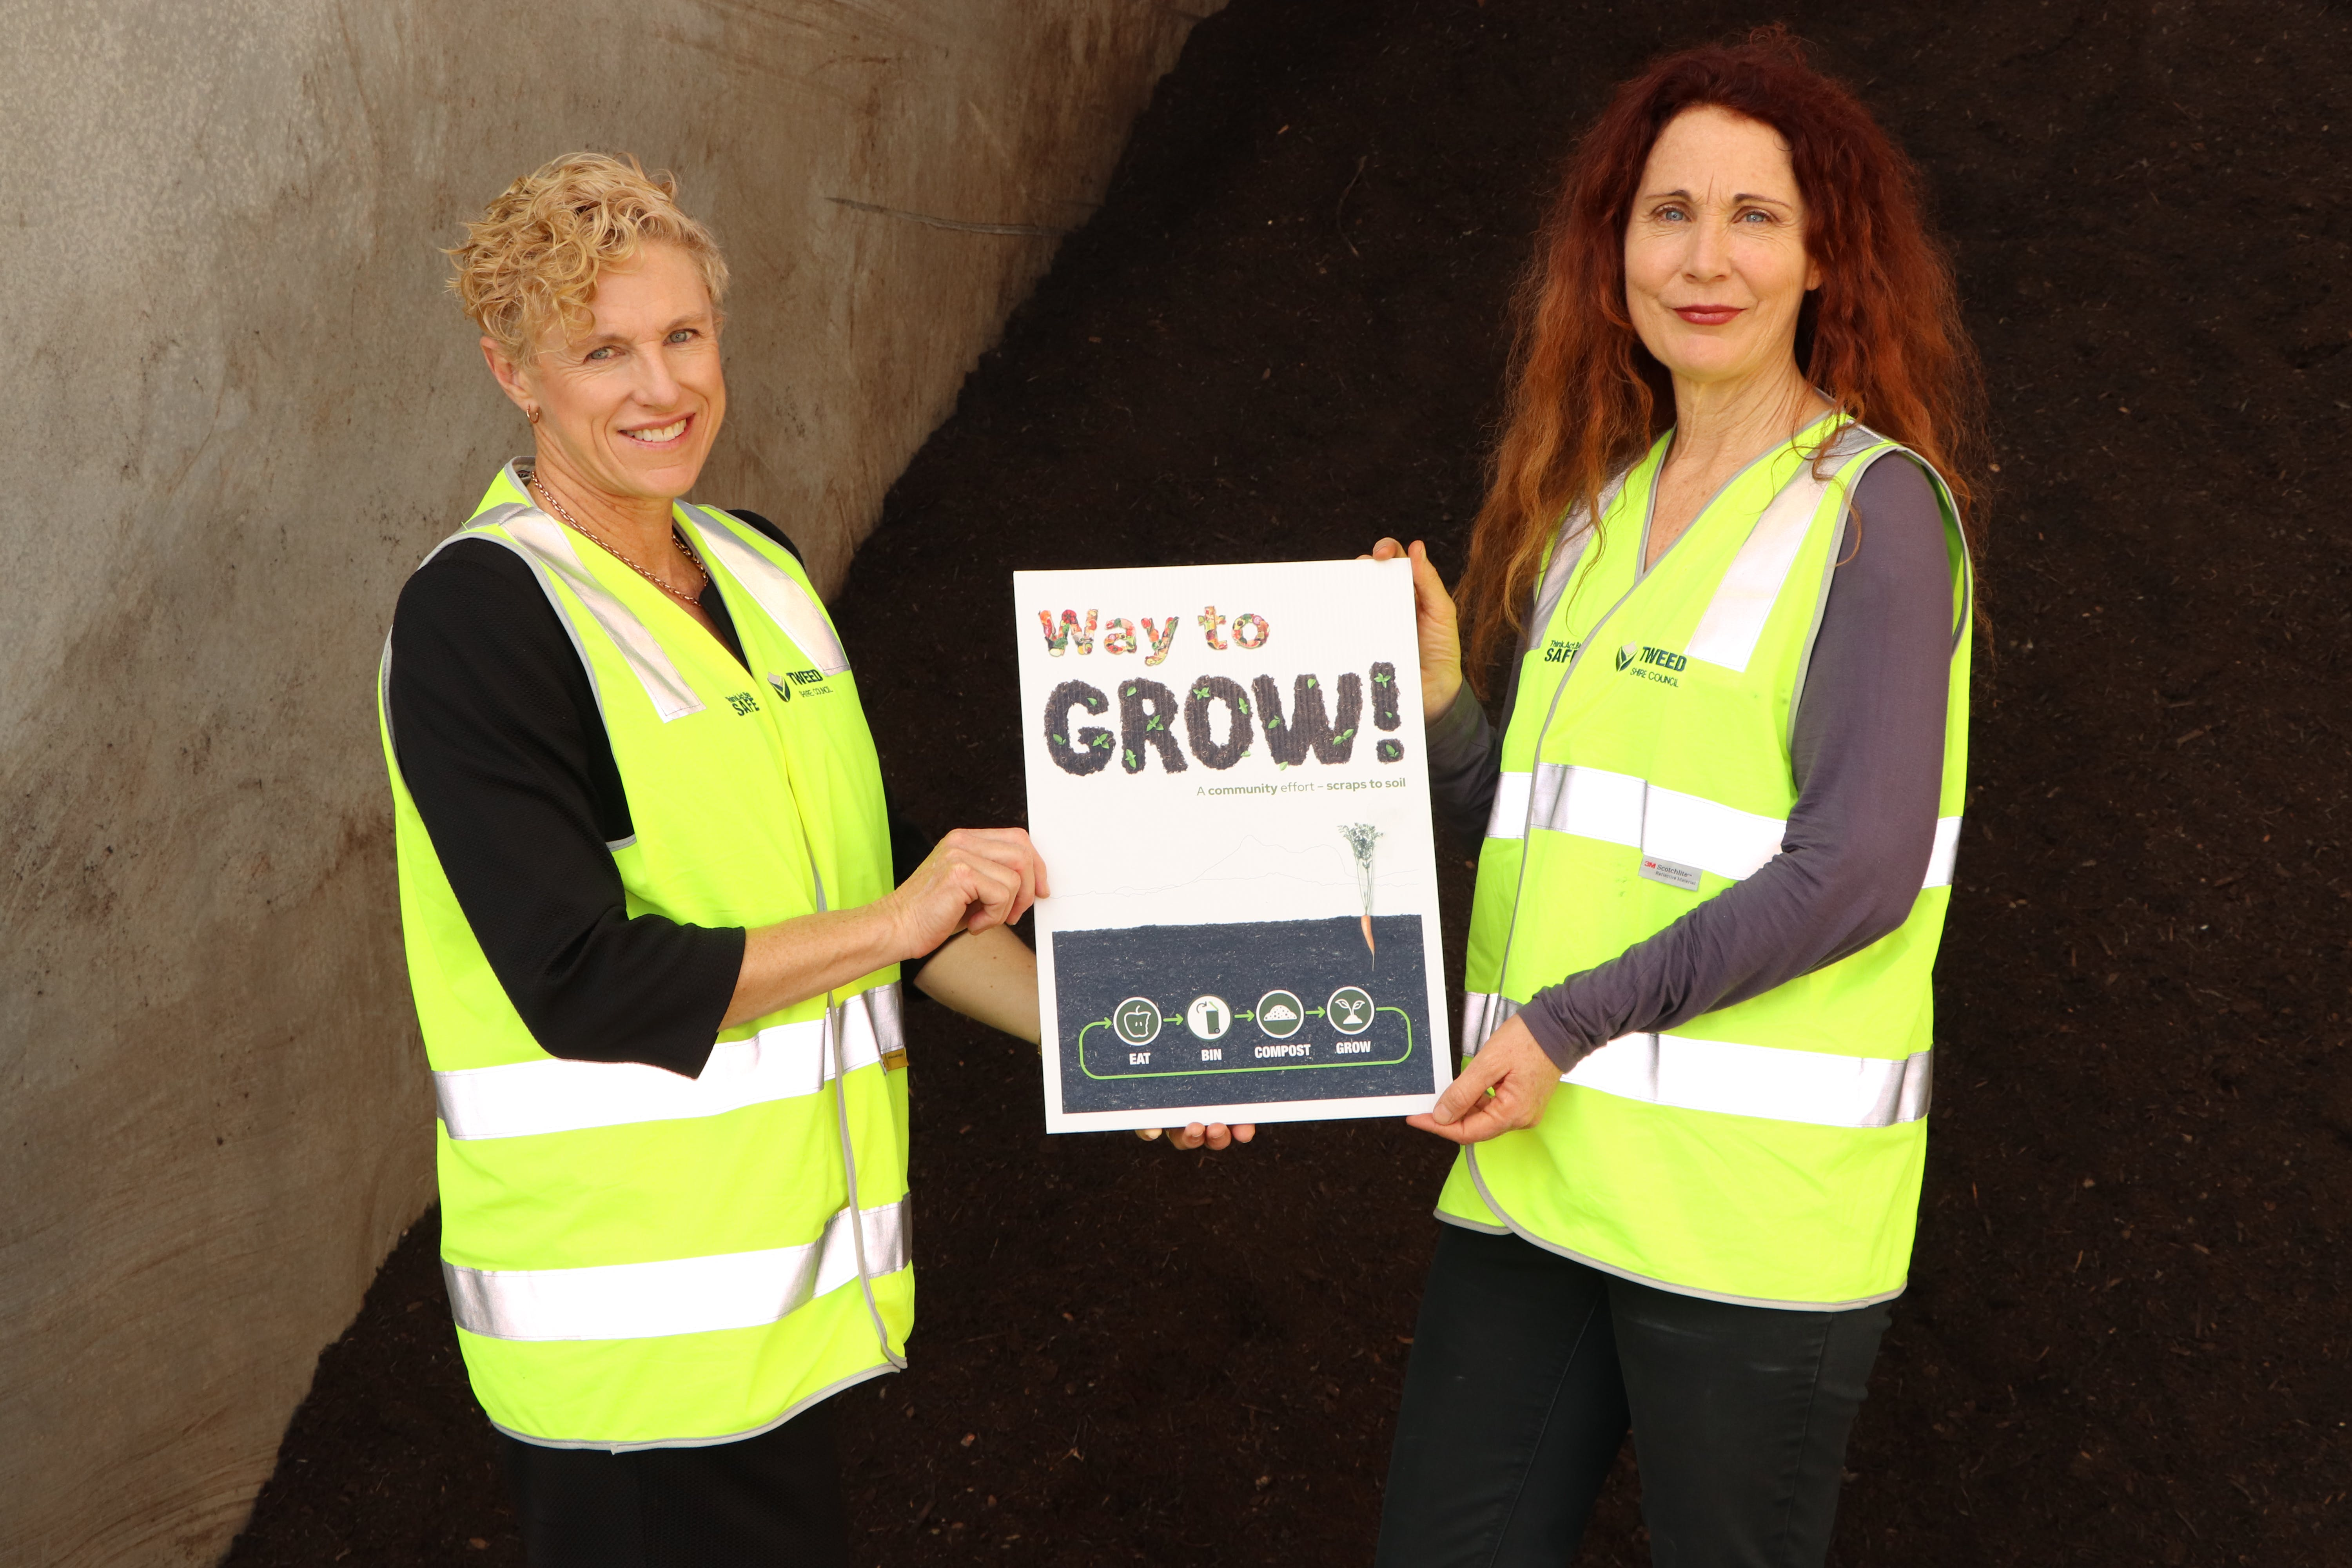 Tweed Mayor Chris Cherry and Director of Sustainable Communities and Environment Tracey Stinson with the new 'Way to Grow' design for the bags of soil that will be available